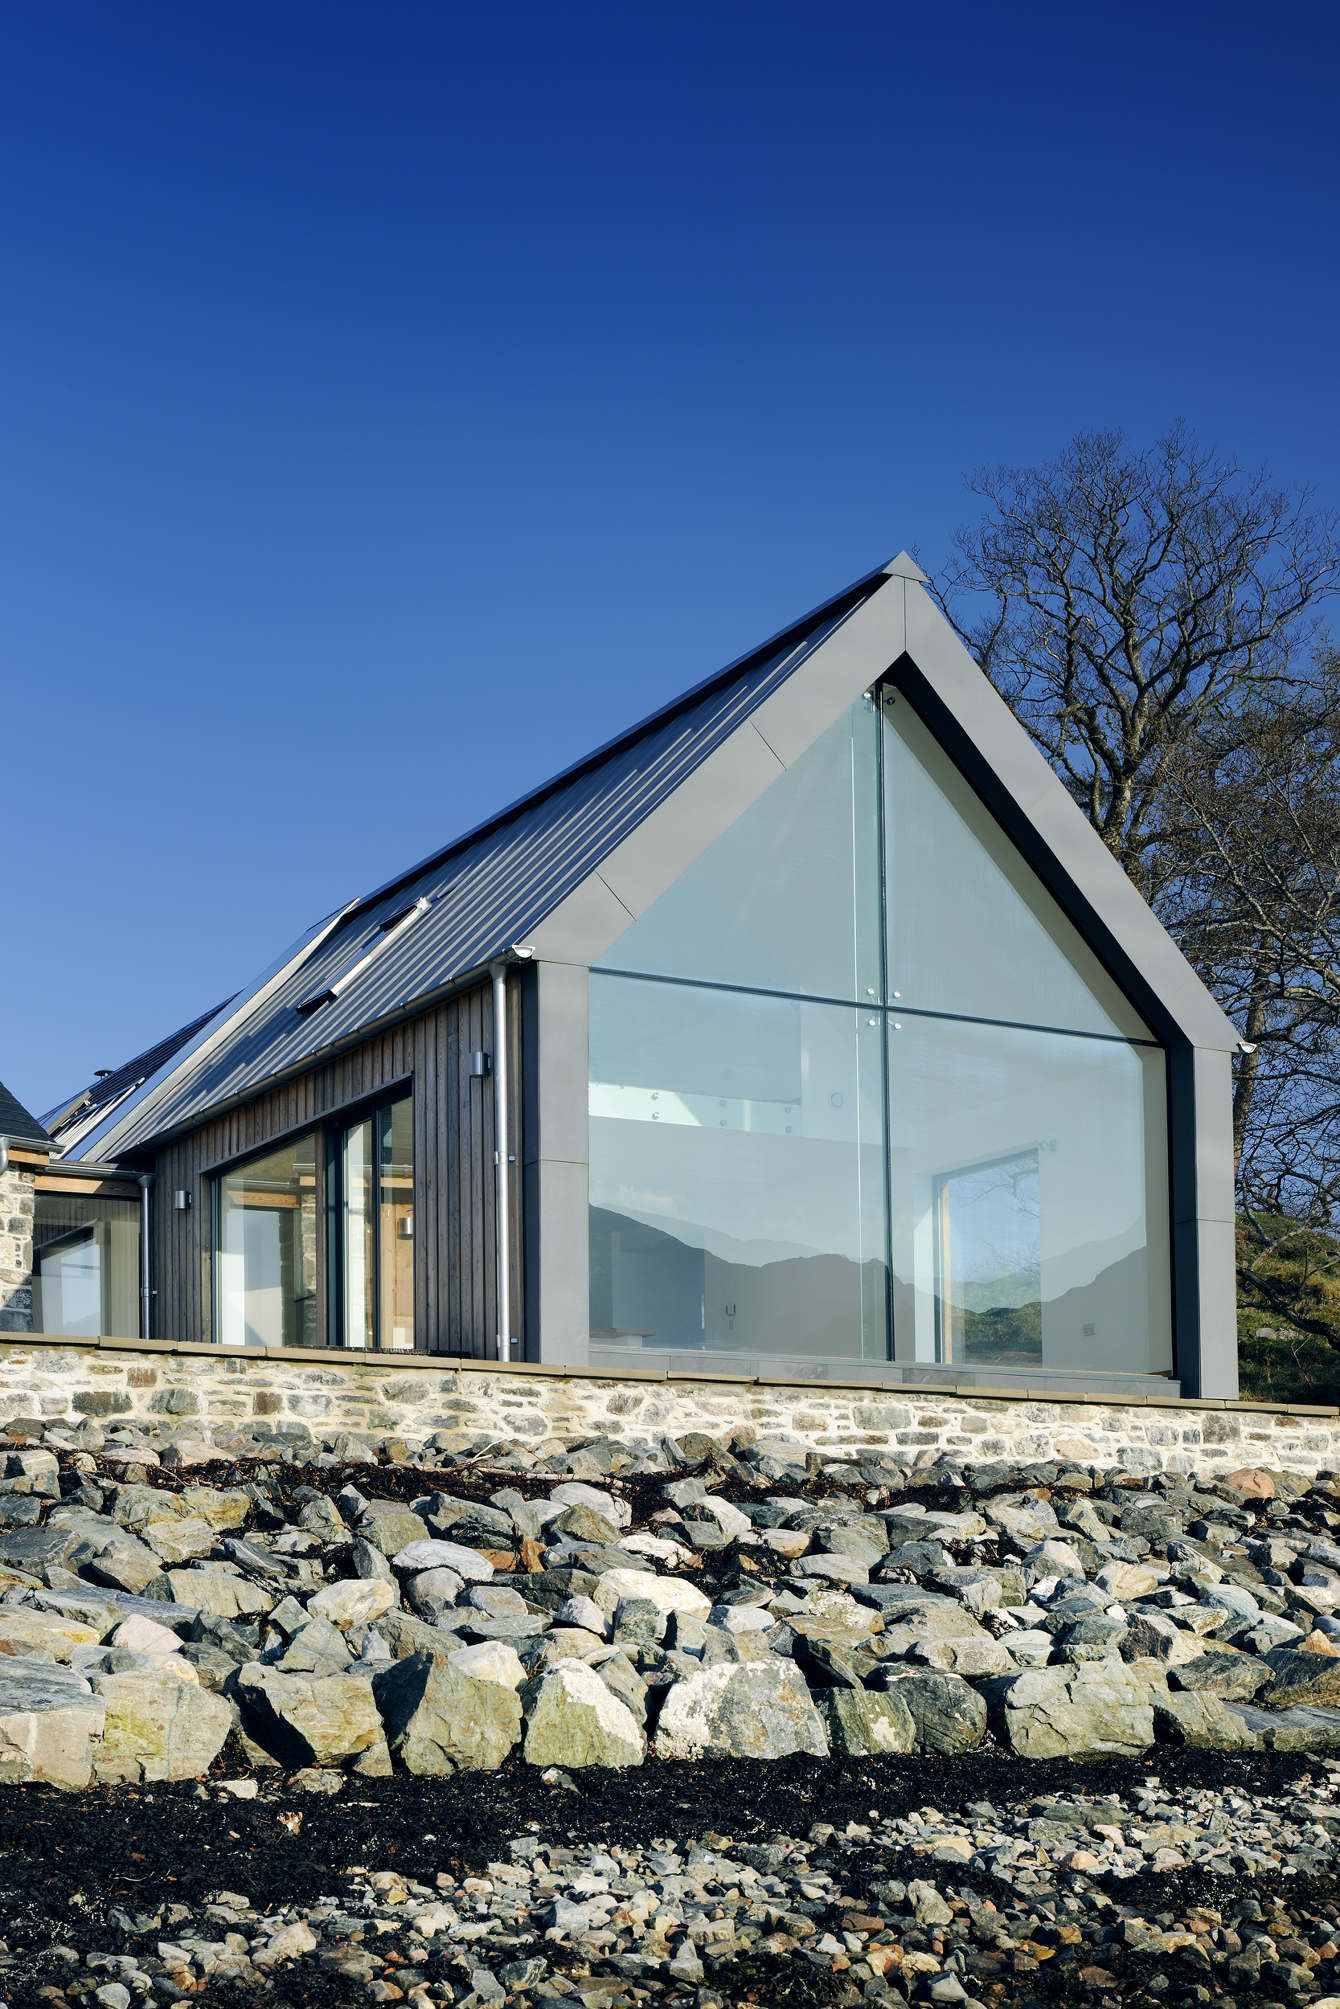 House Designs Scotland Loch Duich Rural Design Architects Isle Of Skye And